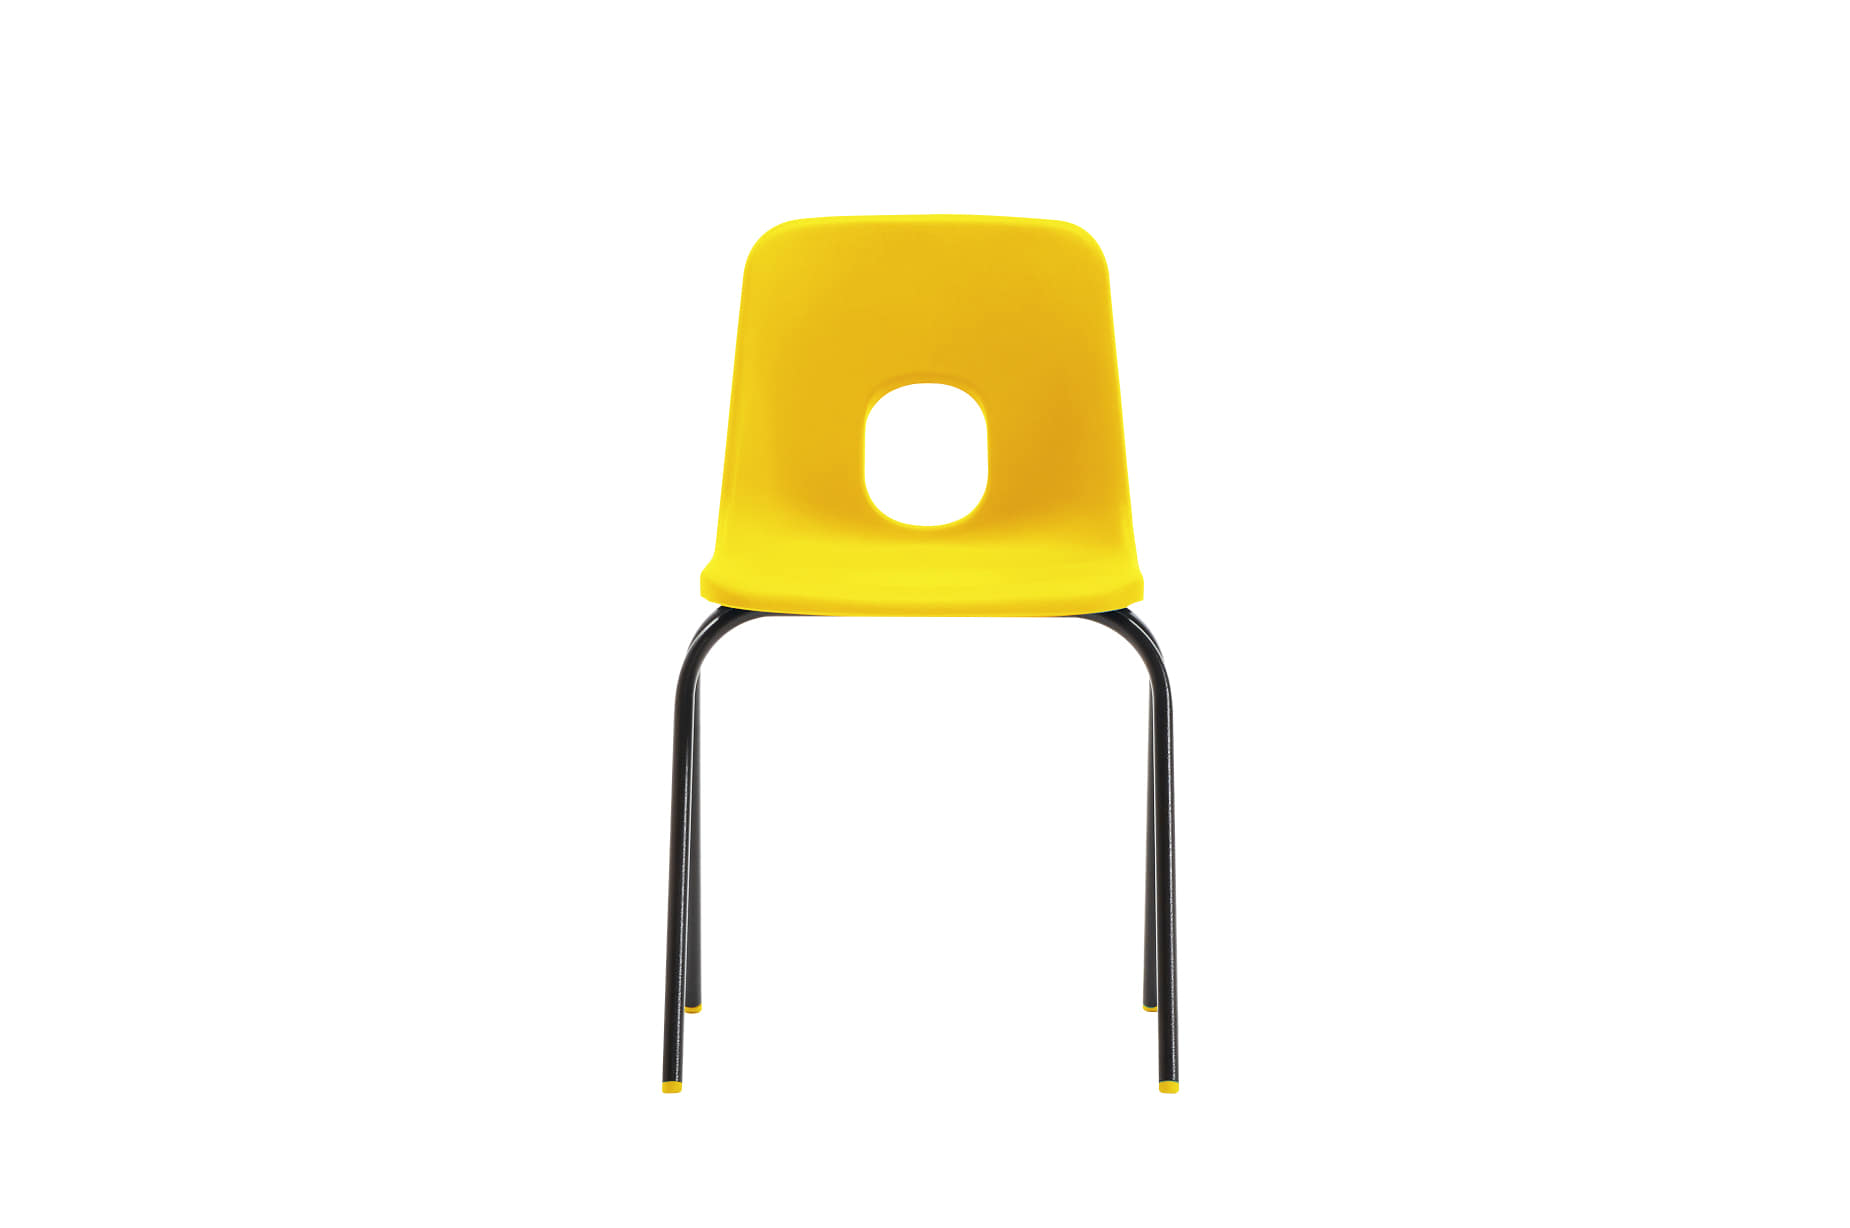 (주)도이치[BRITISHER] Series E chair by Robinday,1971